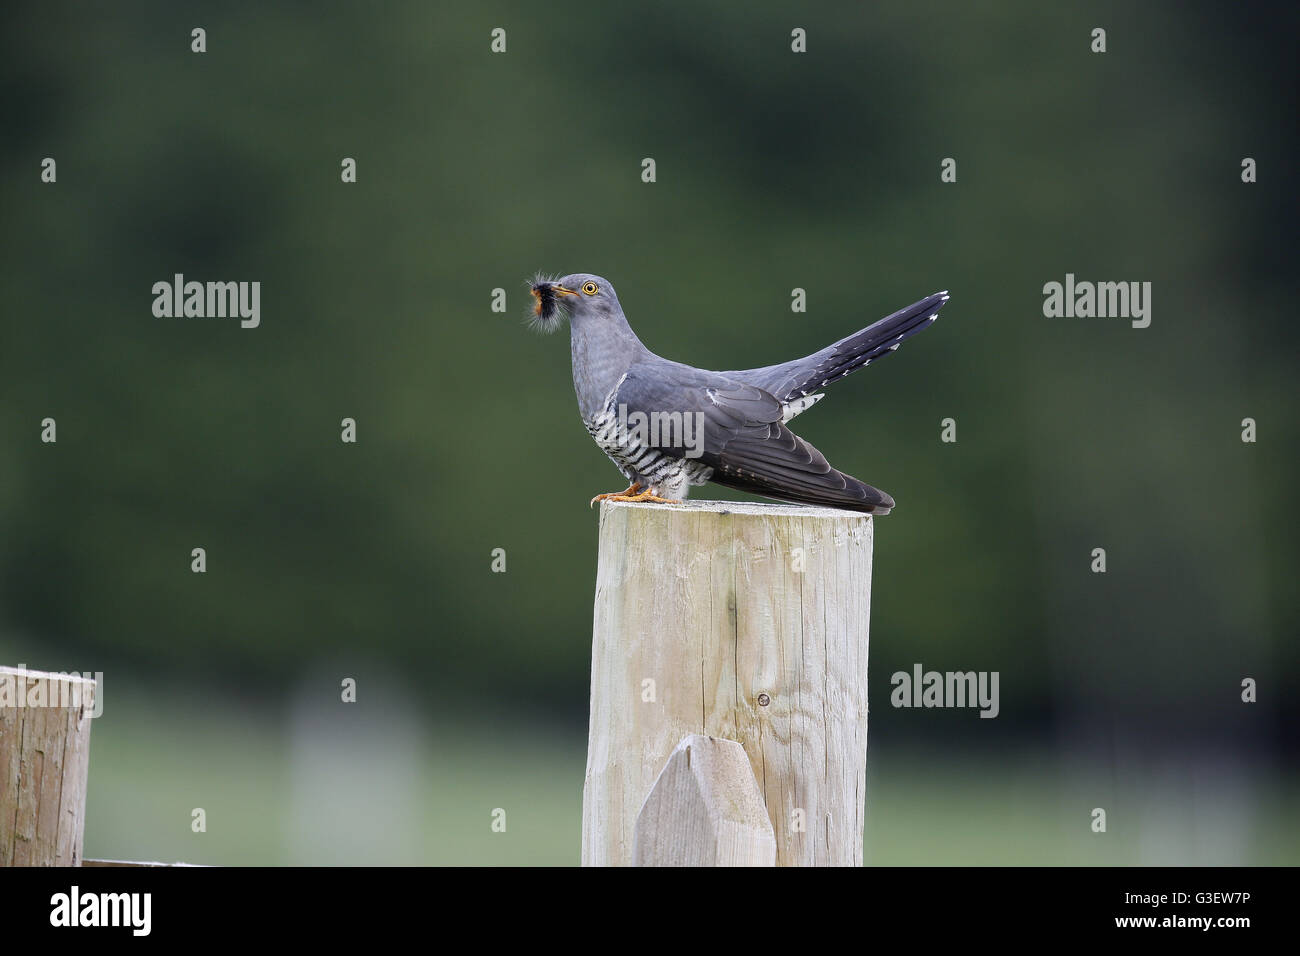 Common Cuckoo, Cuculus canorus, with Garden Tiger caterpillar prey - Stock Image